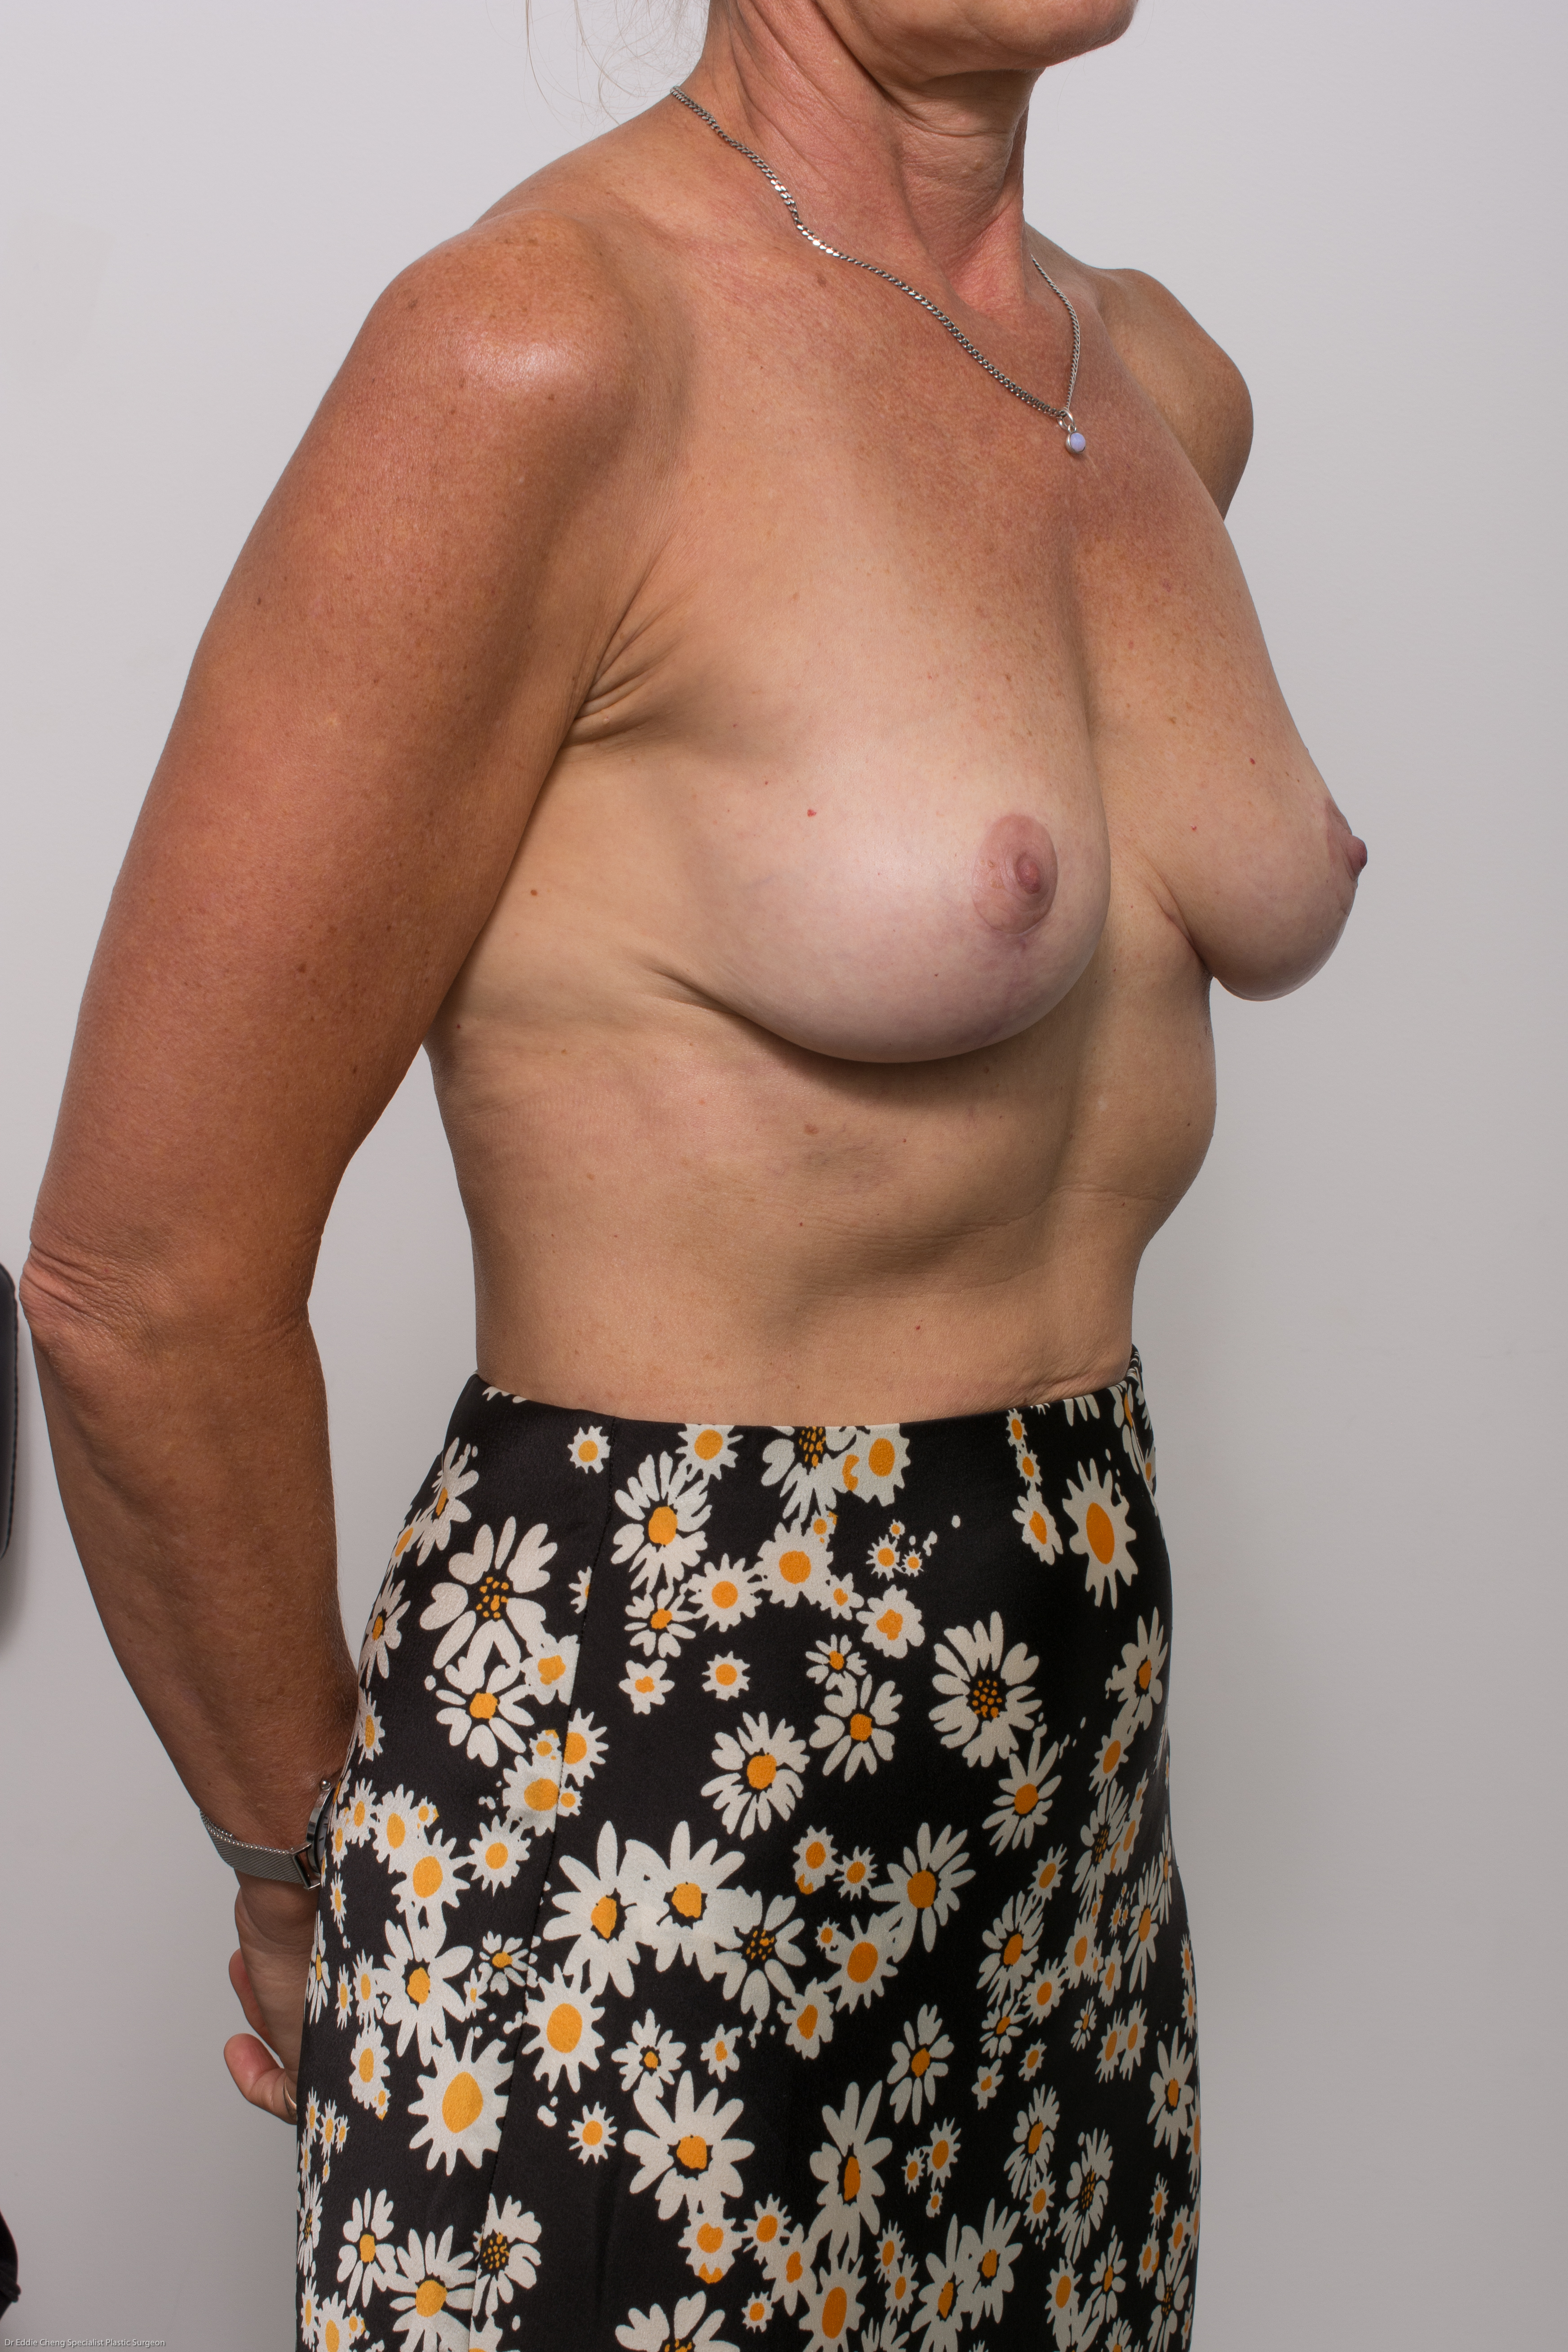 post op removal of breast implants and mastopexy (2 of 5)